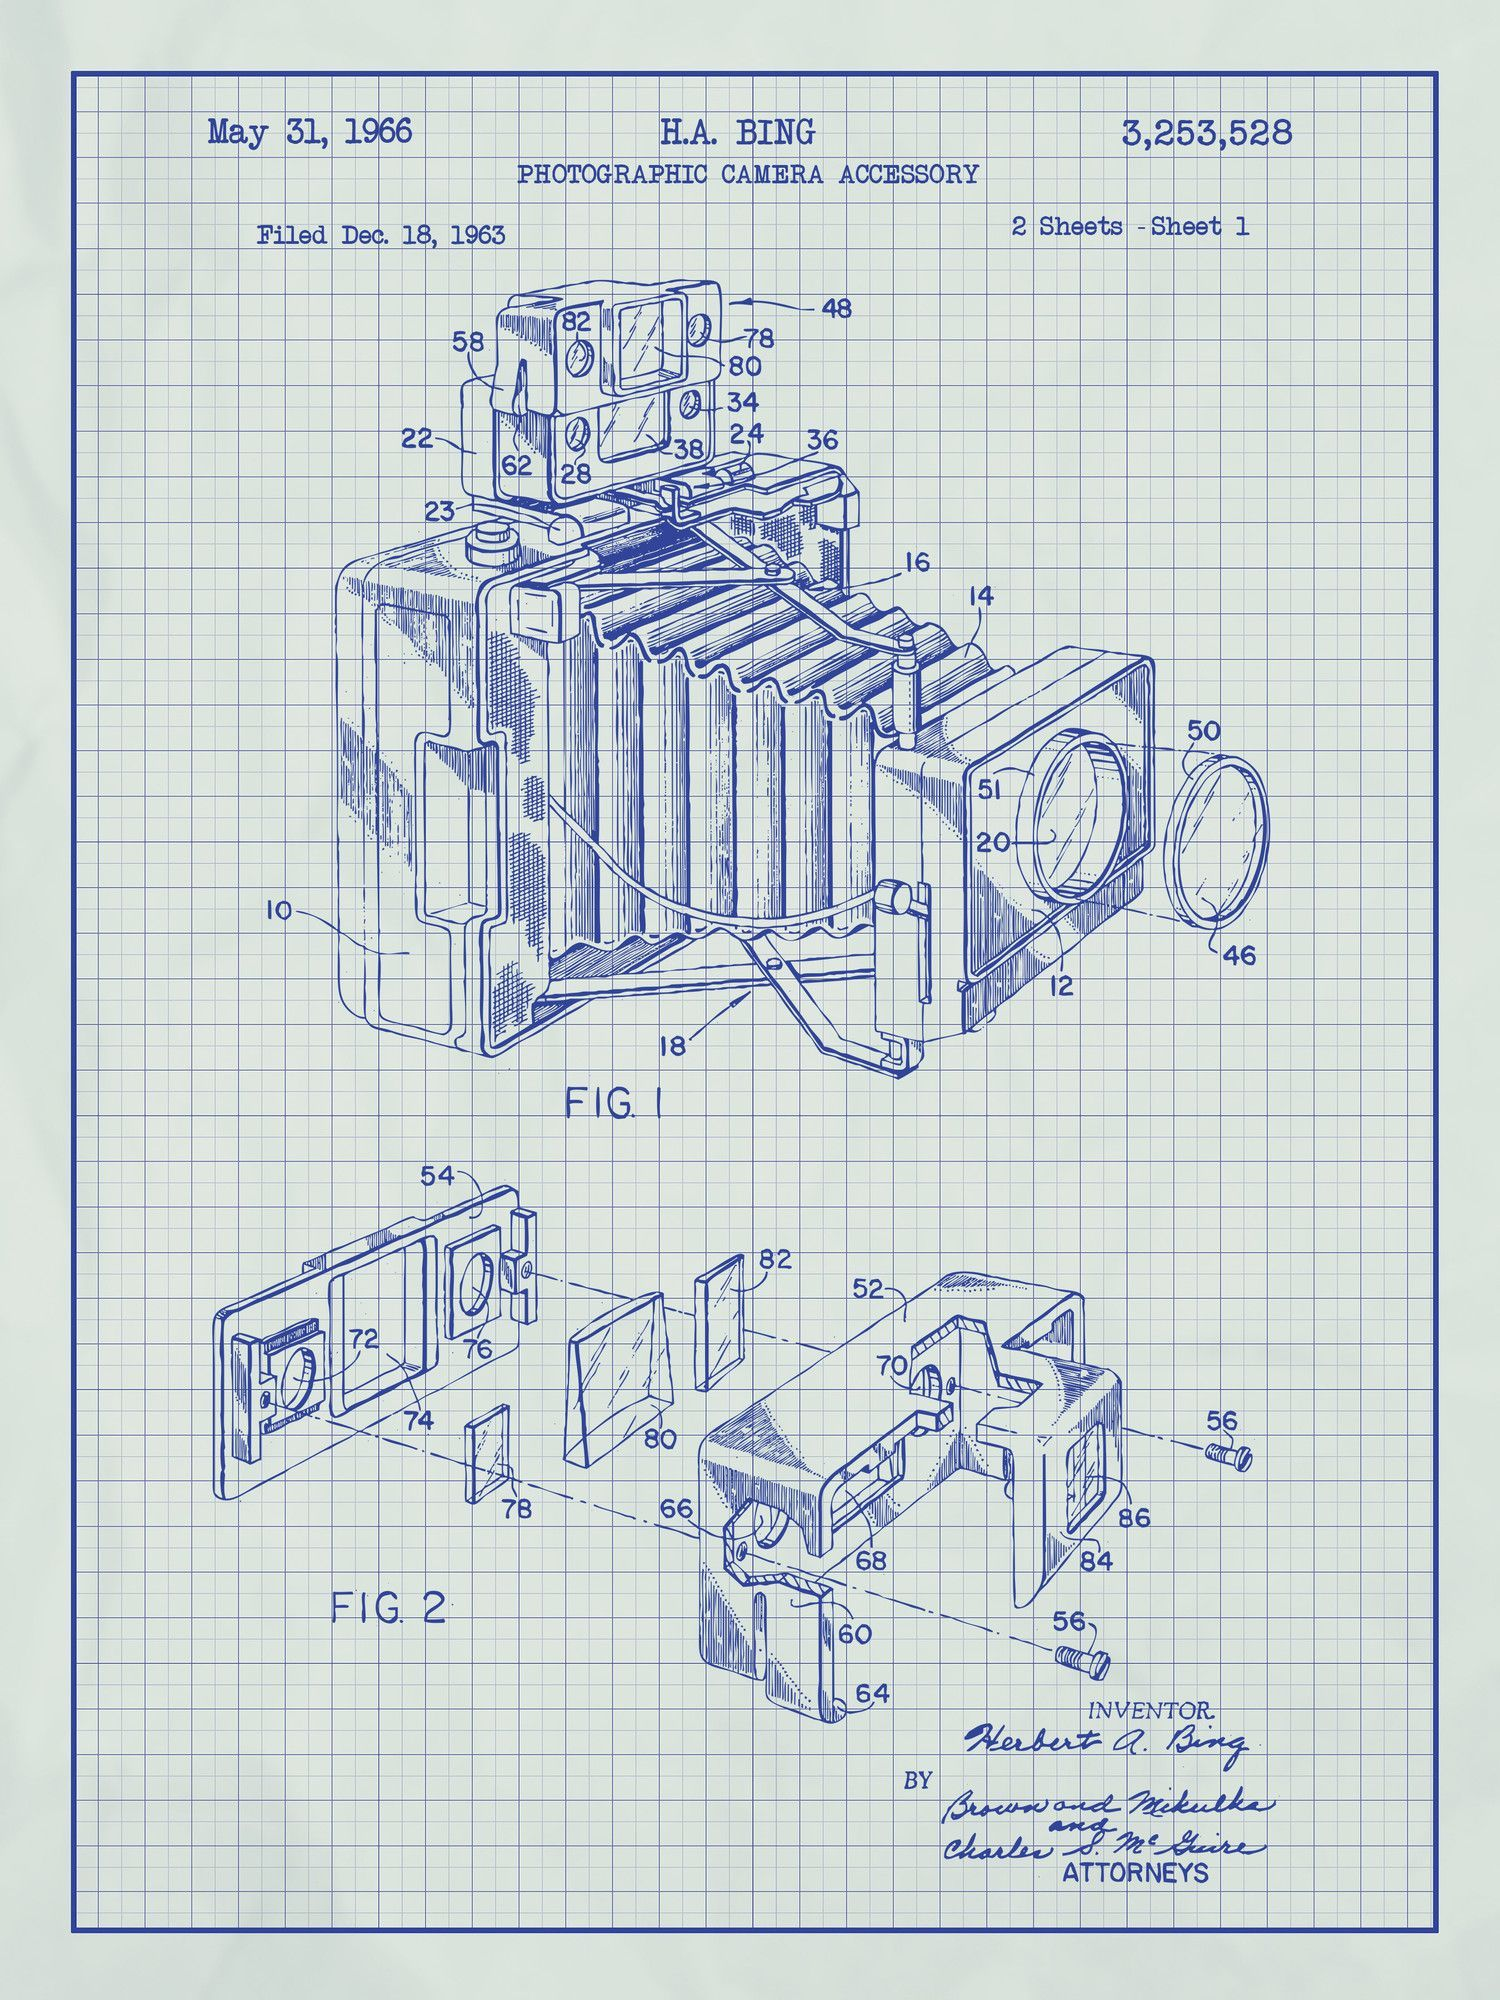 Photographic camera blueprint graphic art art posters graphic art photographic camera blueprint graphic art poster in white gridblue ink malvernweather Images